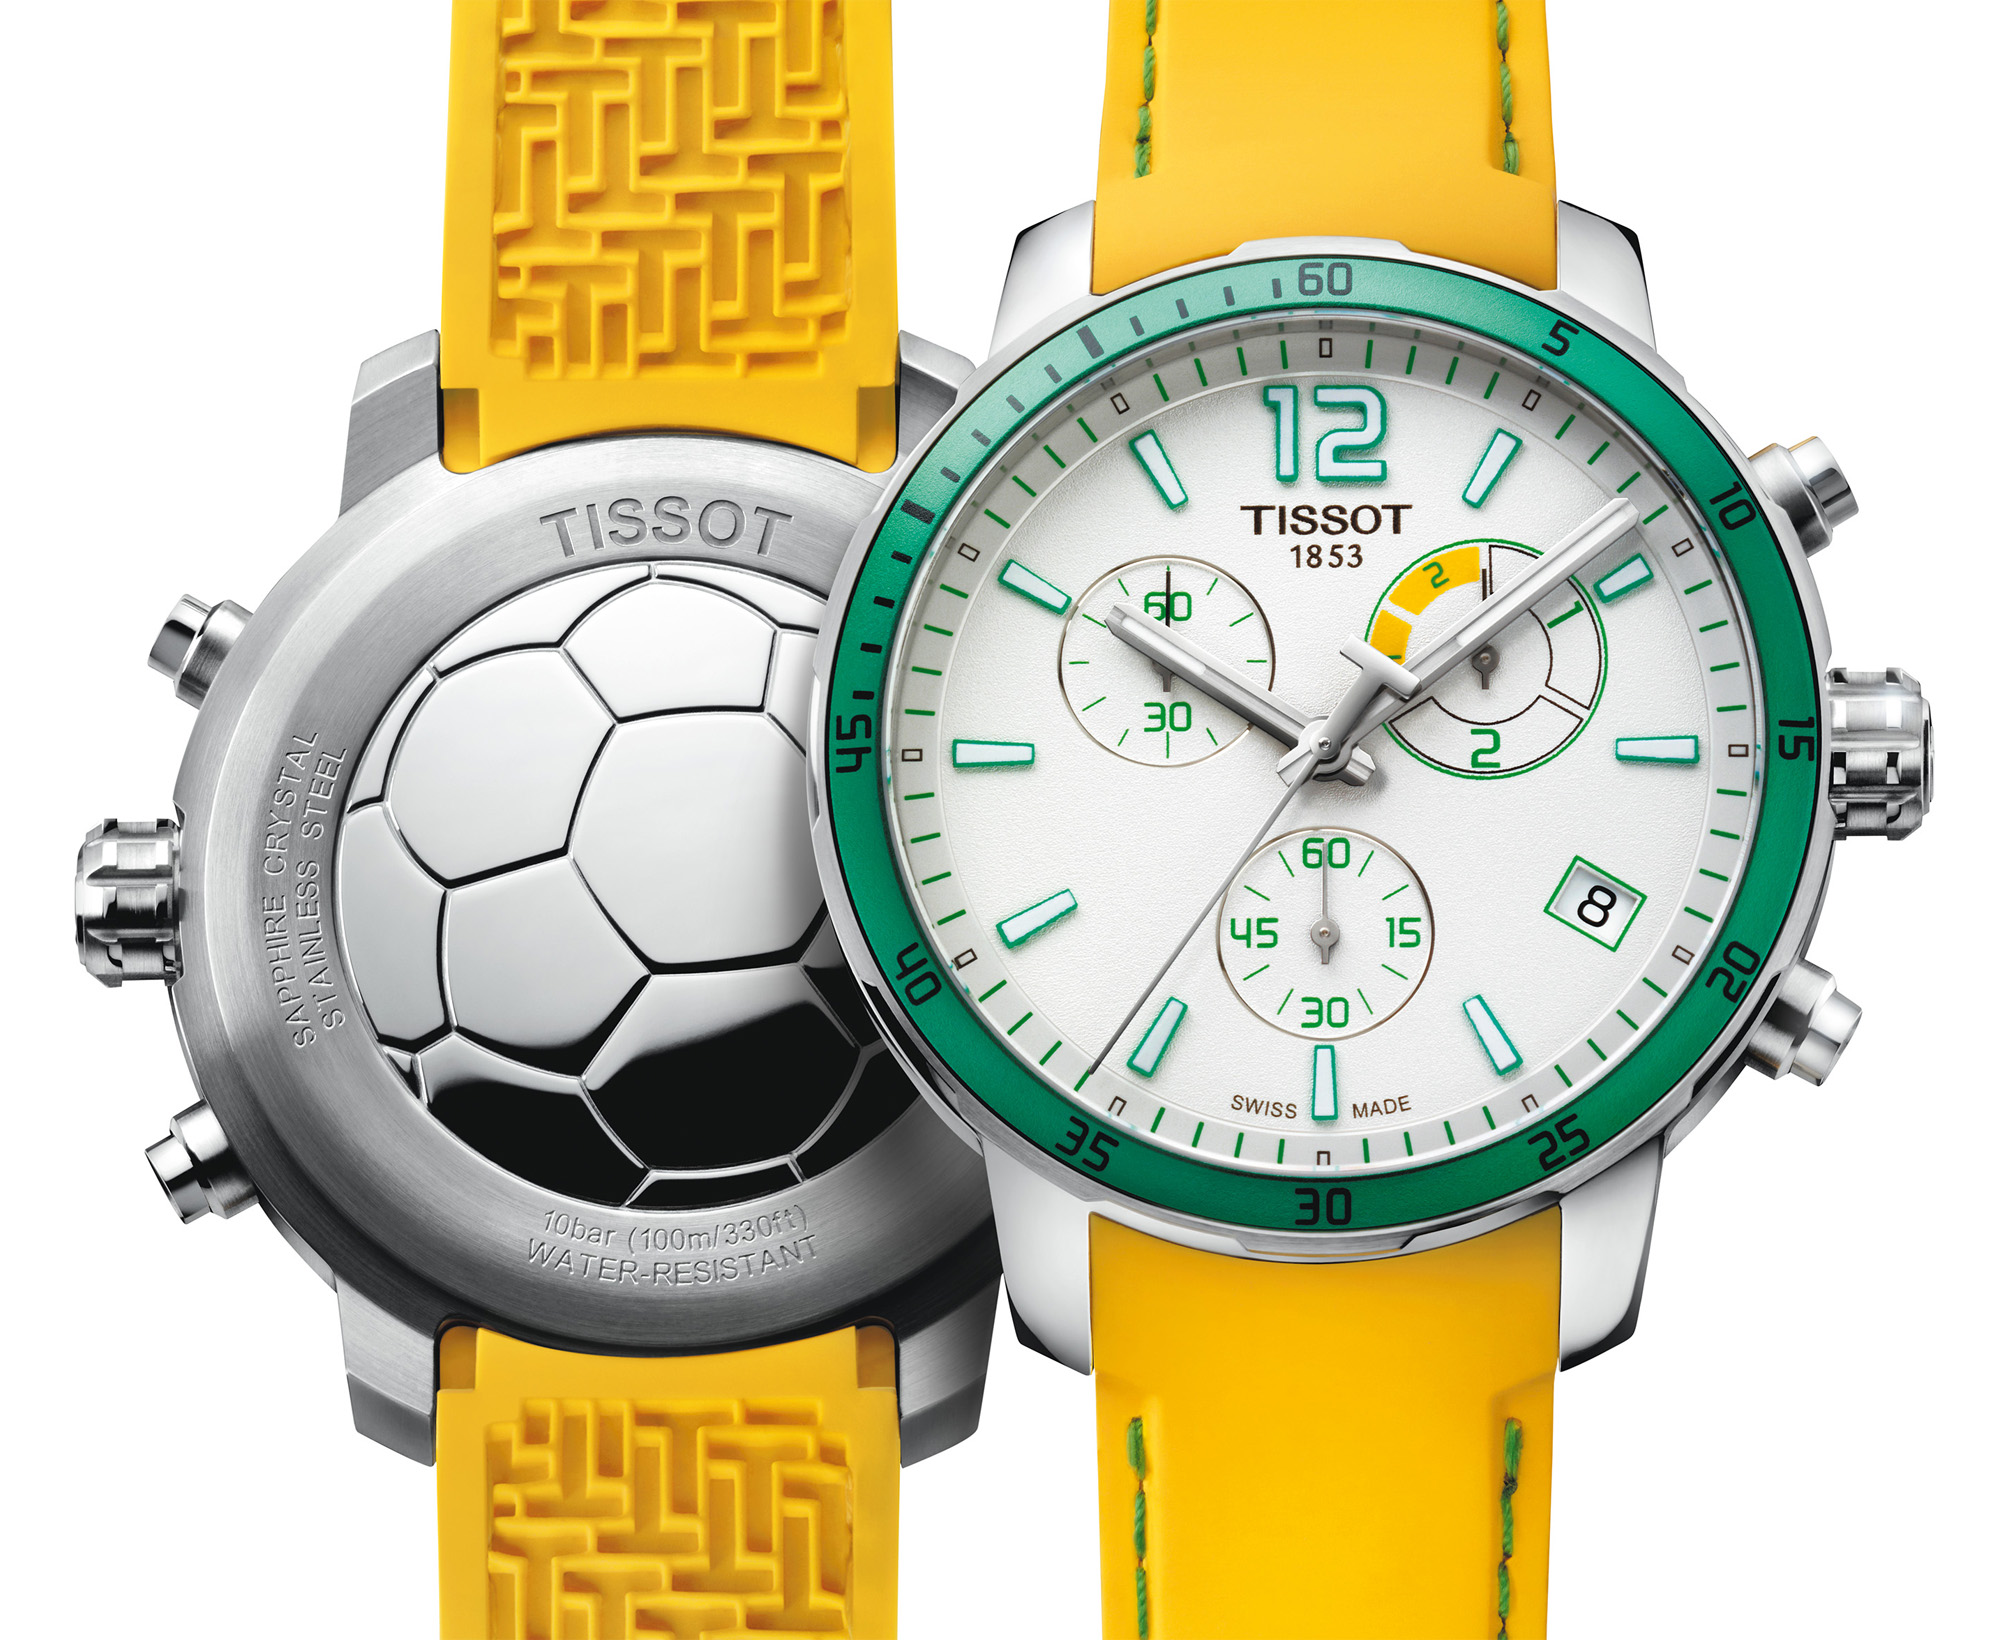 Tissot: Quickster Football watch